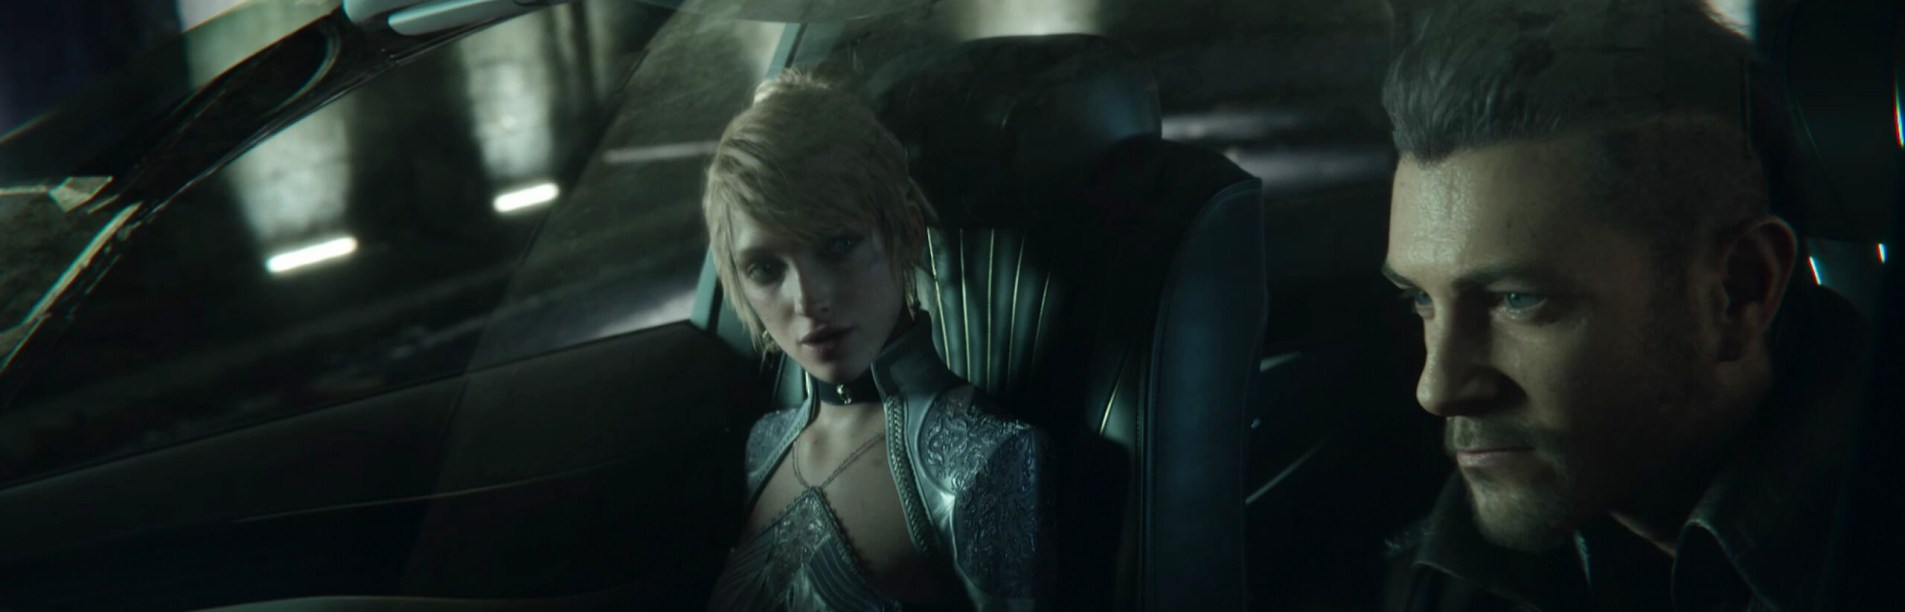 first look at new final fantasy xv concept art the city of